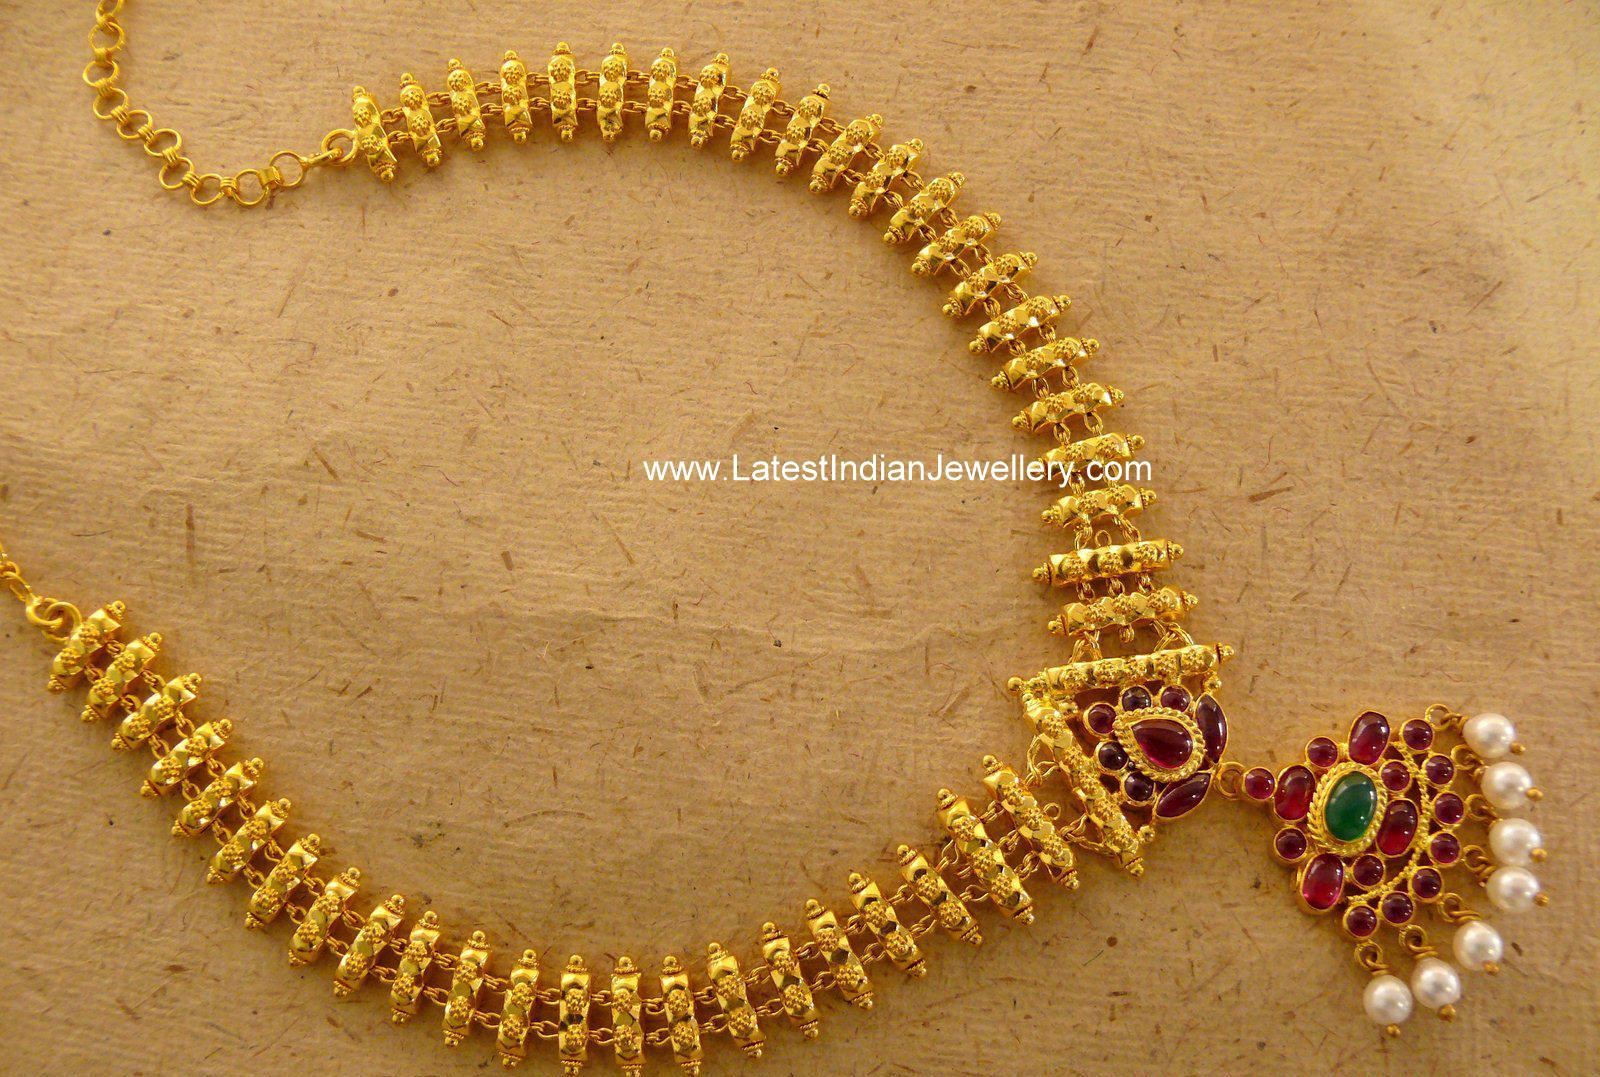 Home vintage jewellery vintage rings vintage ruby and - Lovely Hand Crafted Gold Necklace With Burma Rubies